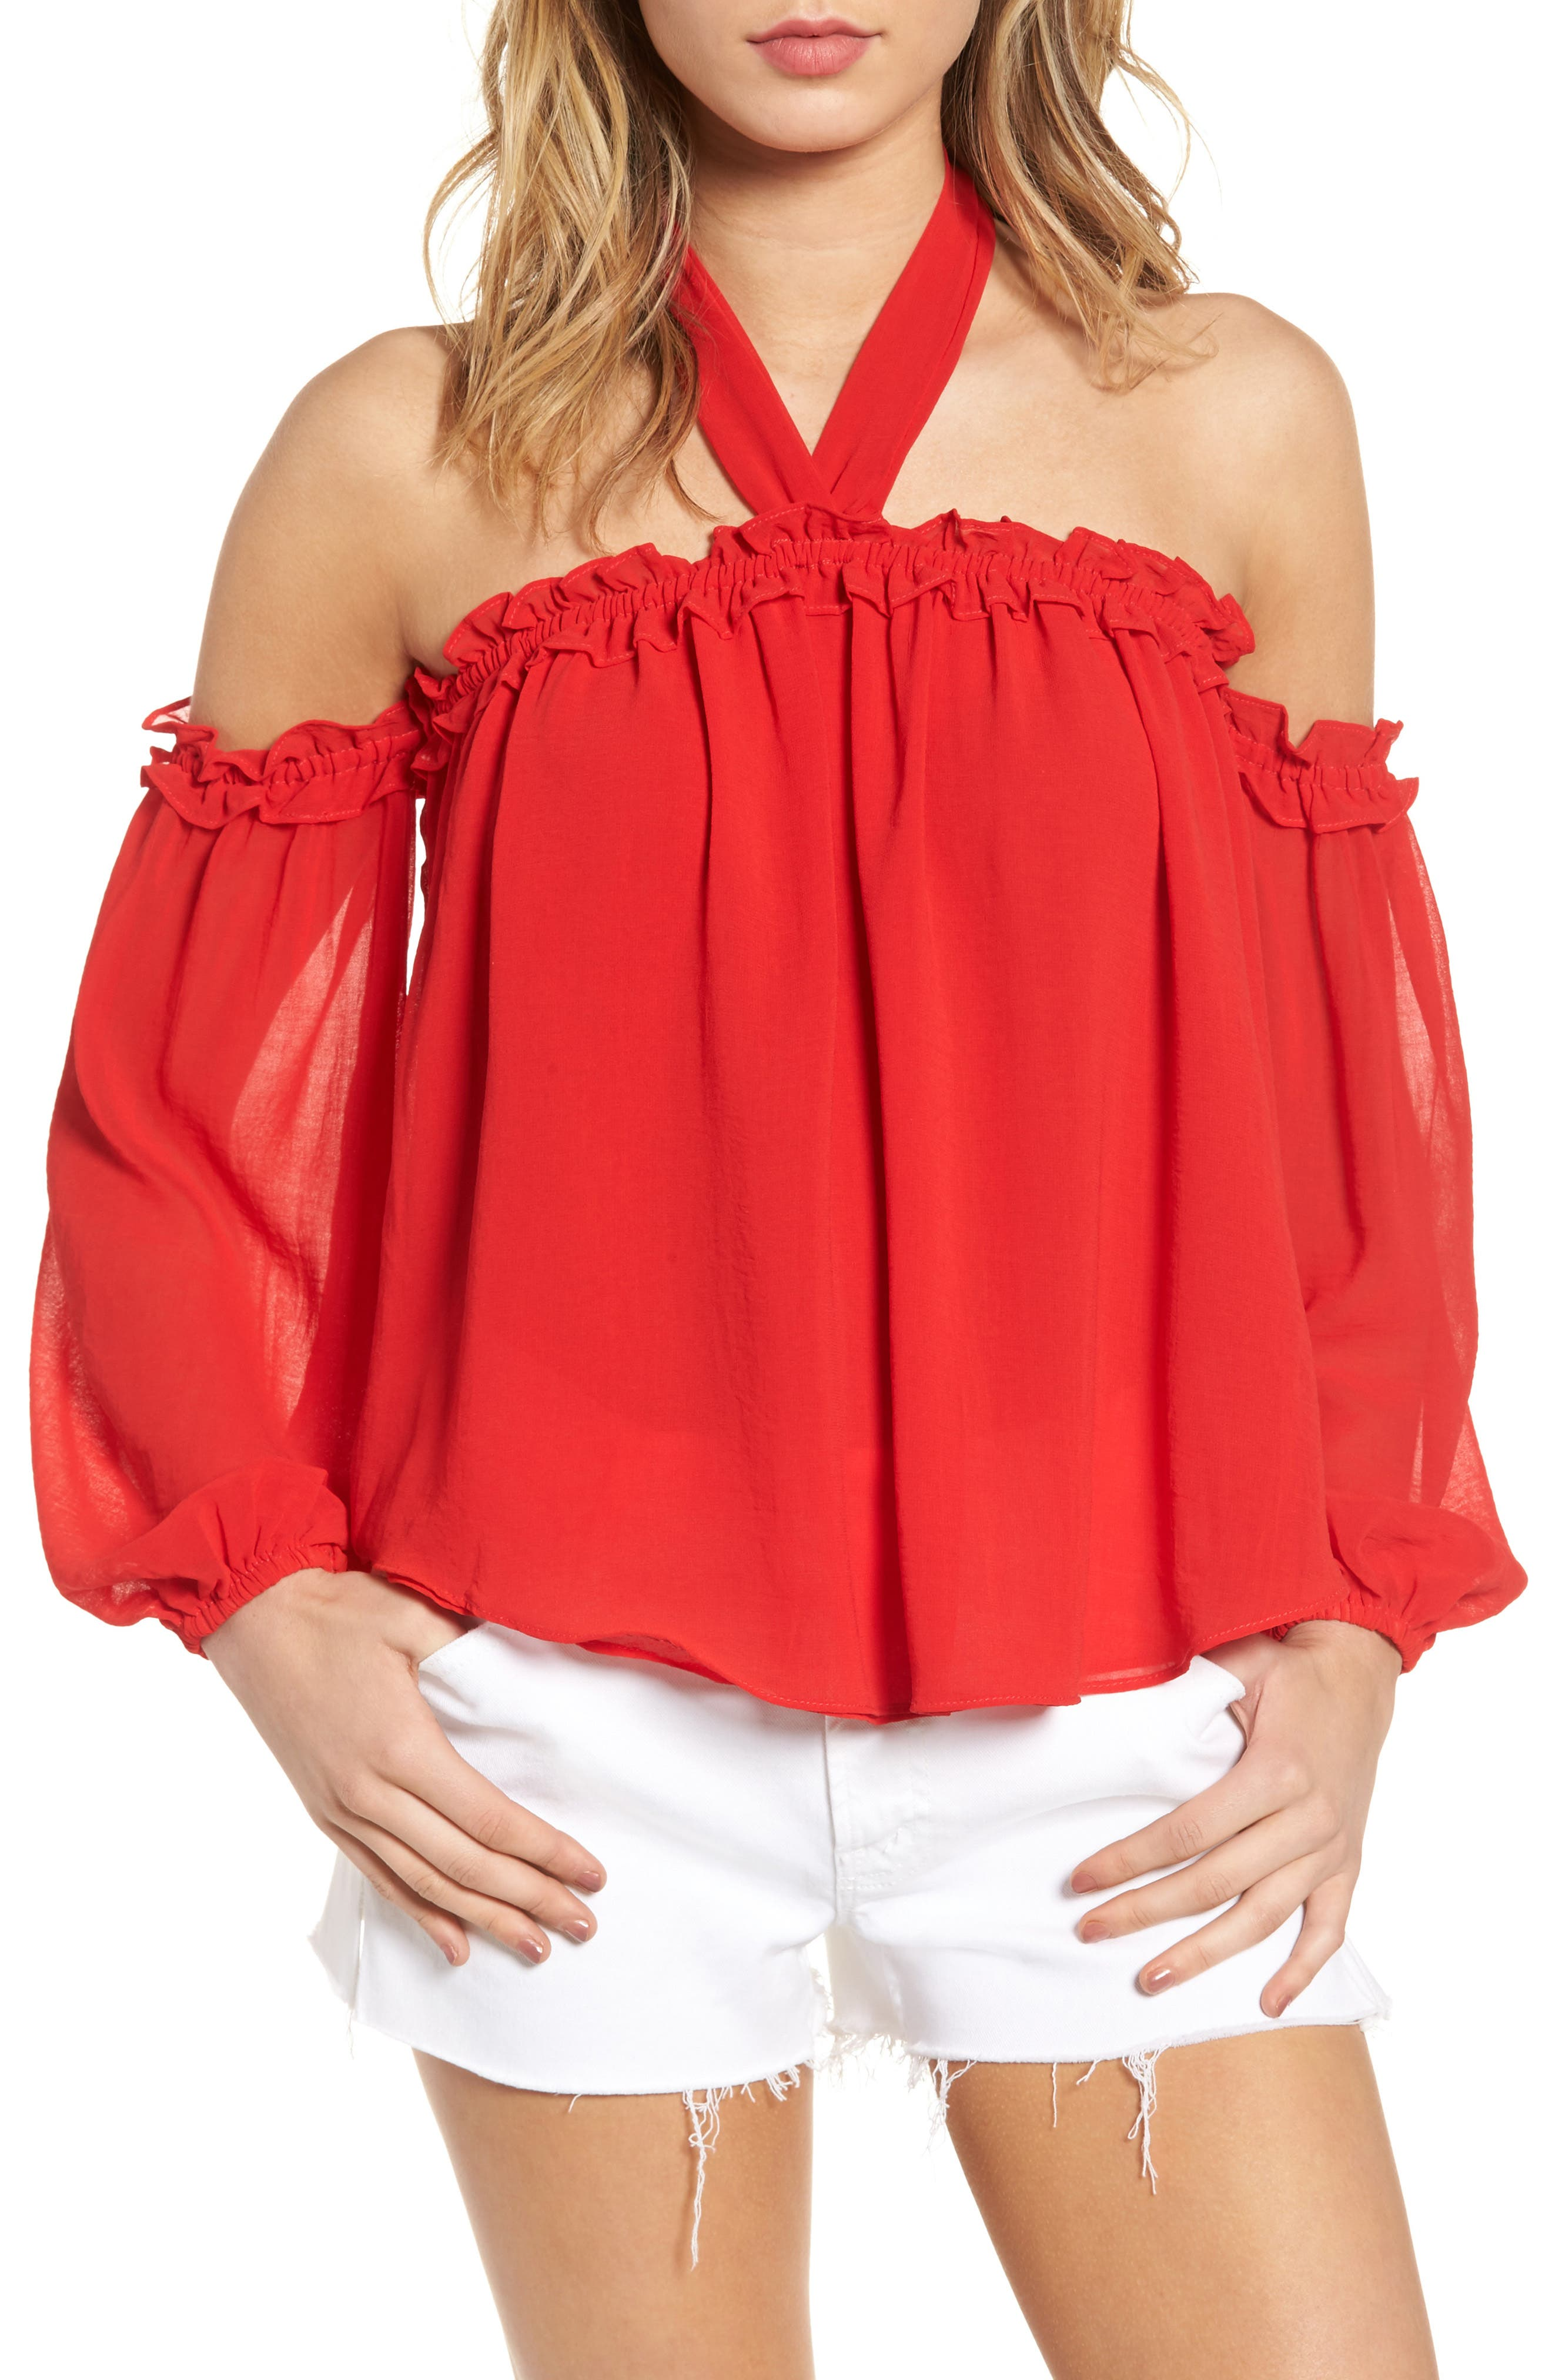 Lively Off the Shoulder Top,                             Main thumbnail 1, color,                             Red